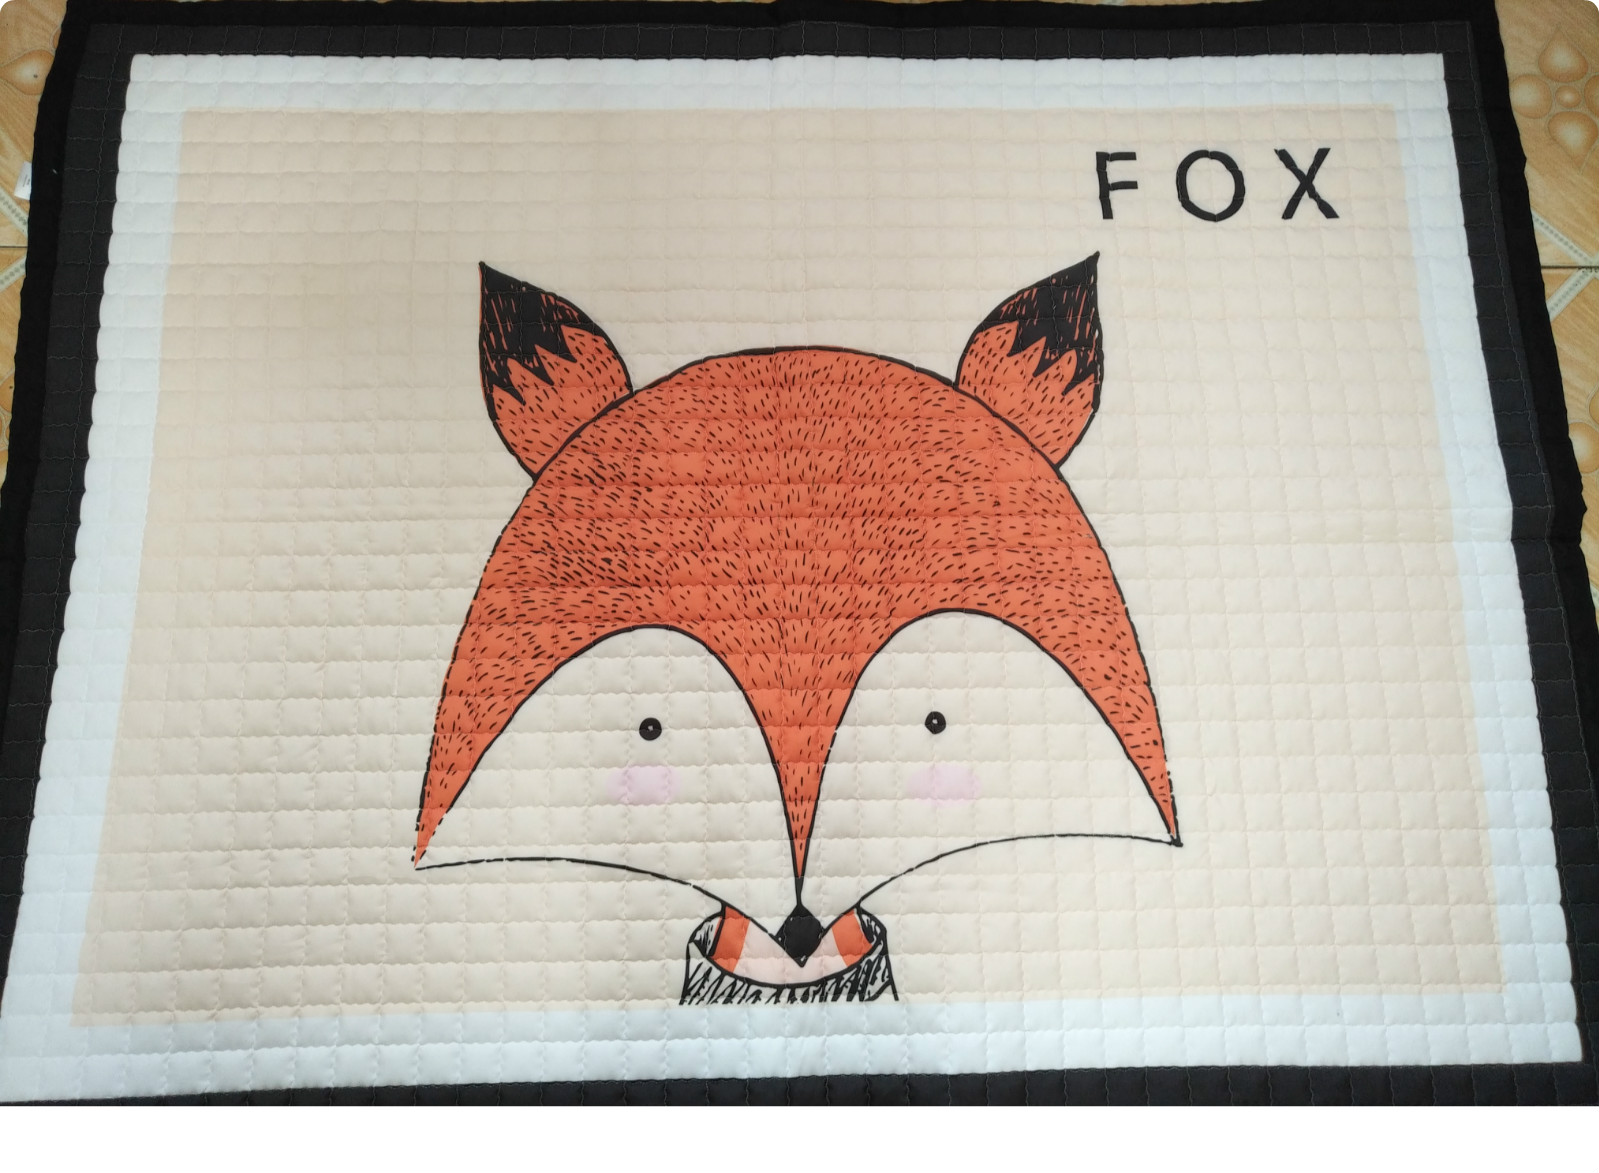 Big Size A little flawed Fox Baby Play Mats Pad Toddler Kids Crawling Blanket 150cm*195cm Carpet Rug Toys Children Room Decor .-in Play Mats from Toys & Hobbies    1